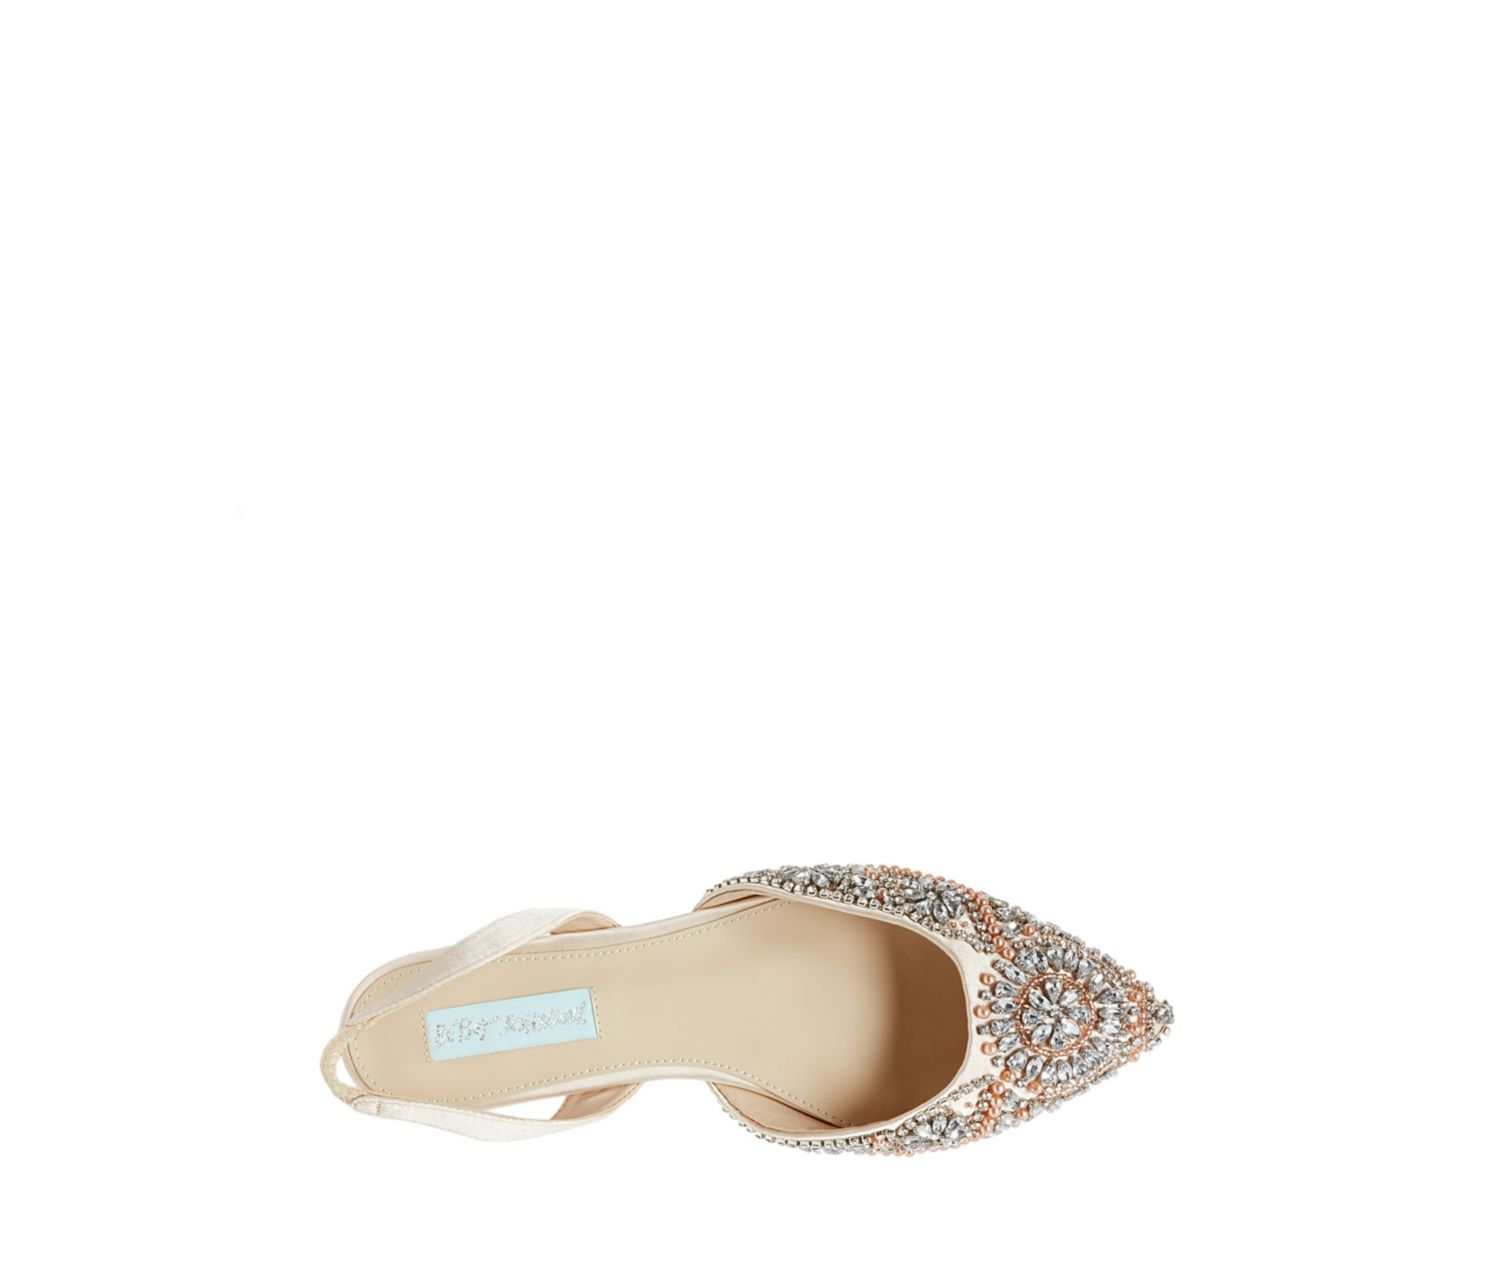 05c1a40c6a7 ... SB-MOLLY CHAMPAGNE SATIN - SHOES - Betsey Johnson